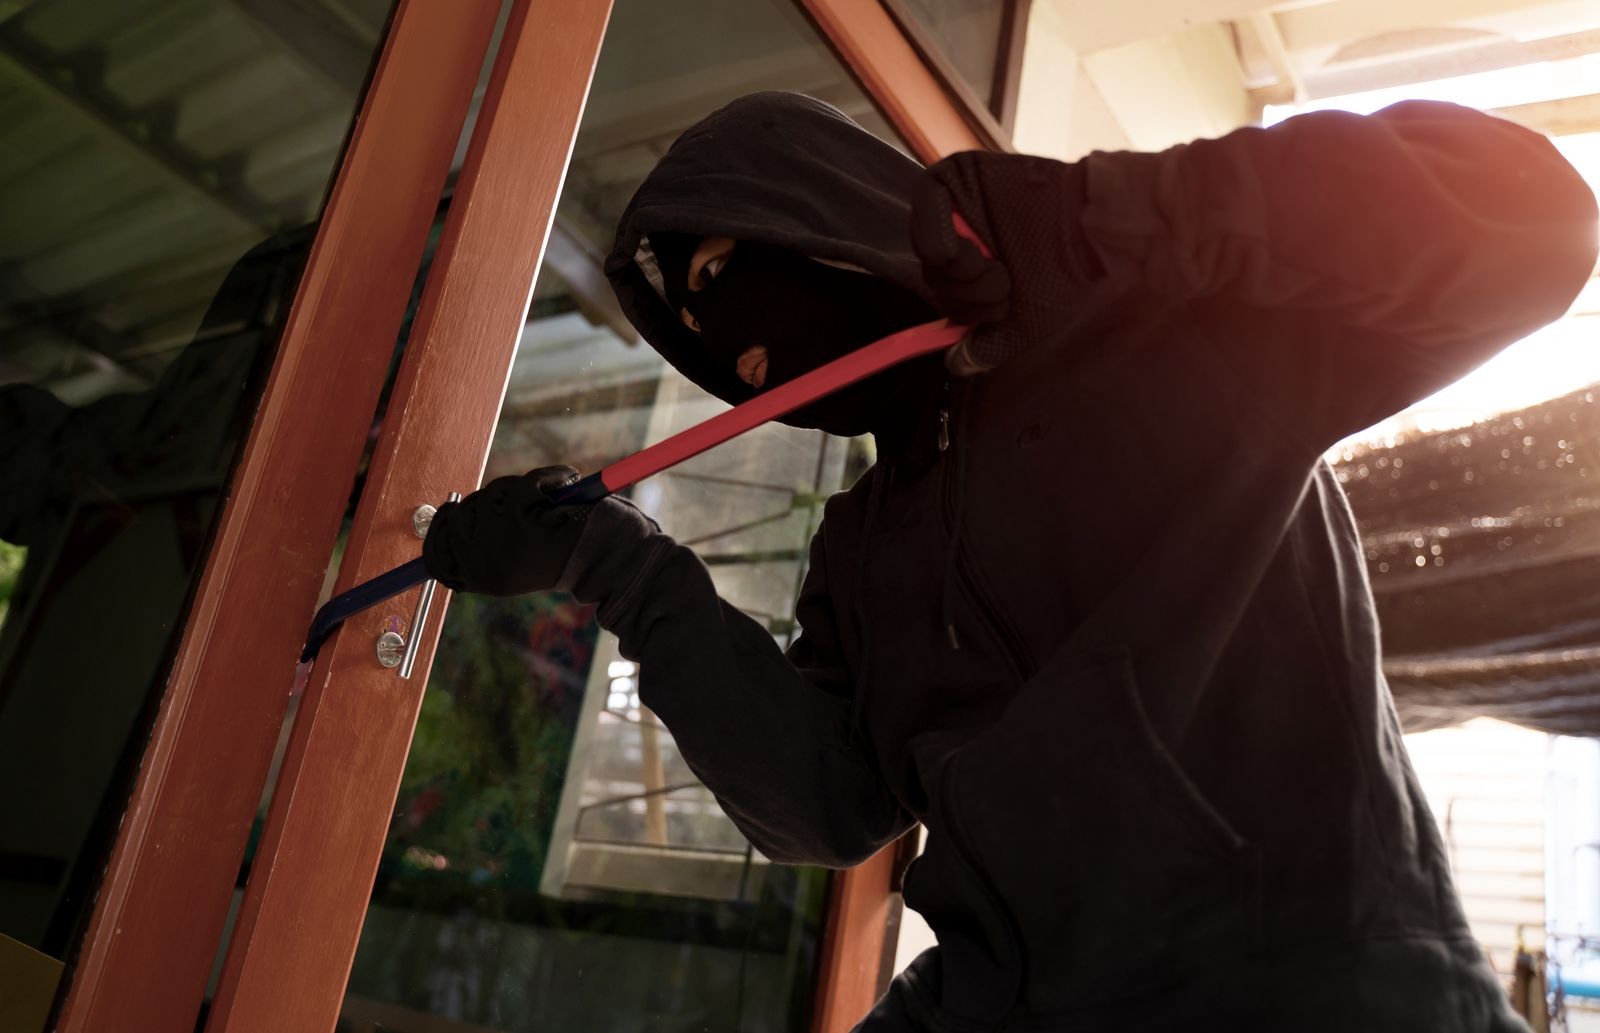 Male burglar wearing a hoodie forcing entry into a house with crowbar through a front door.